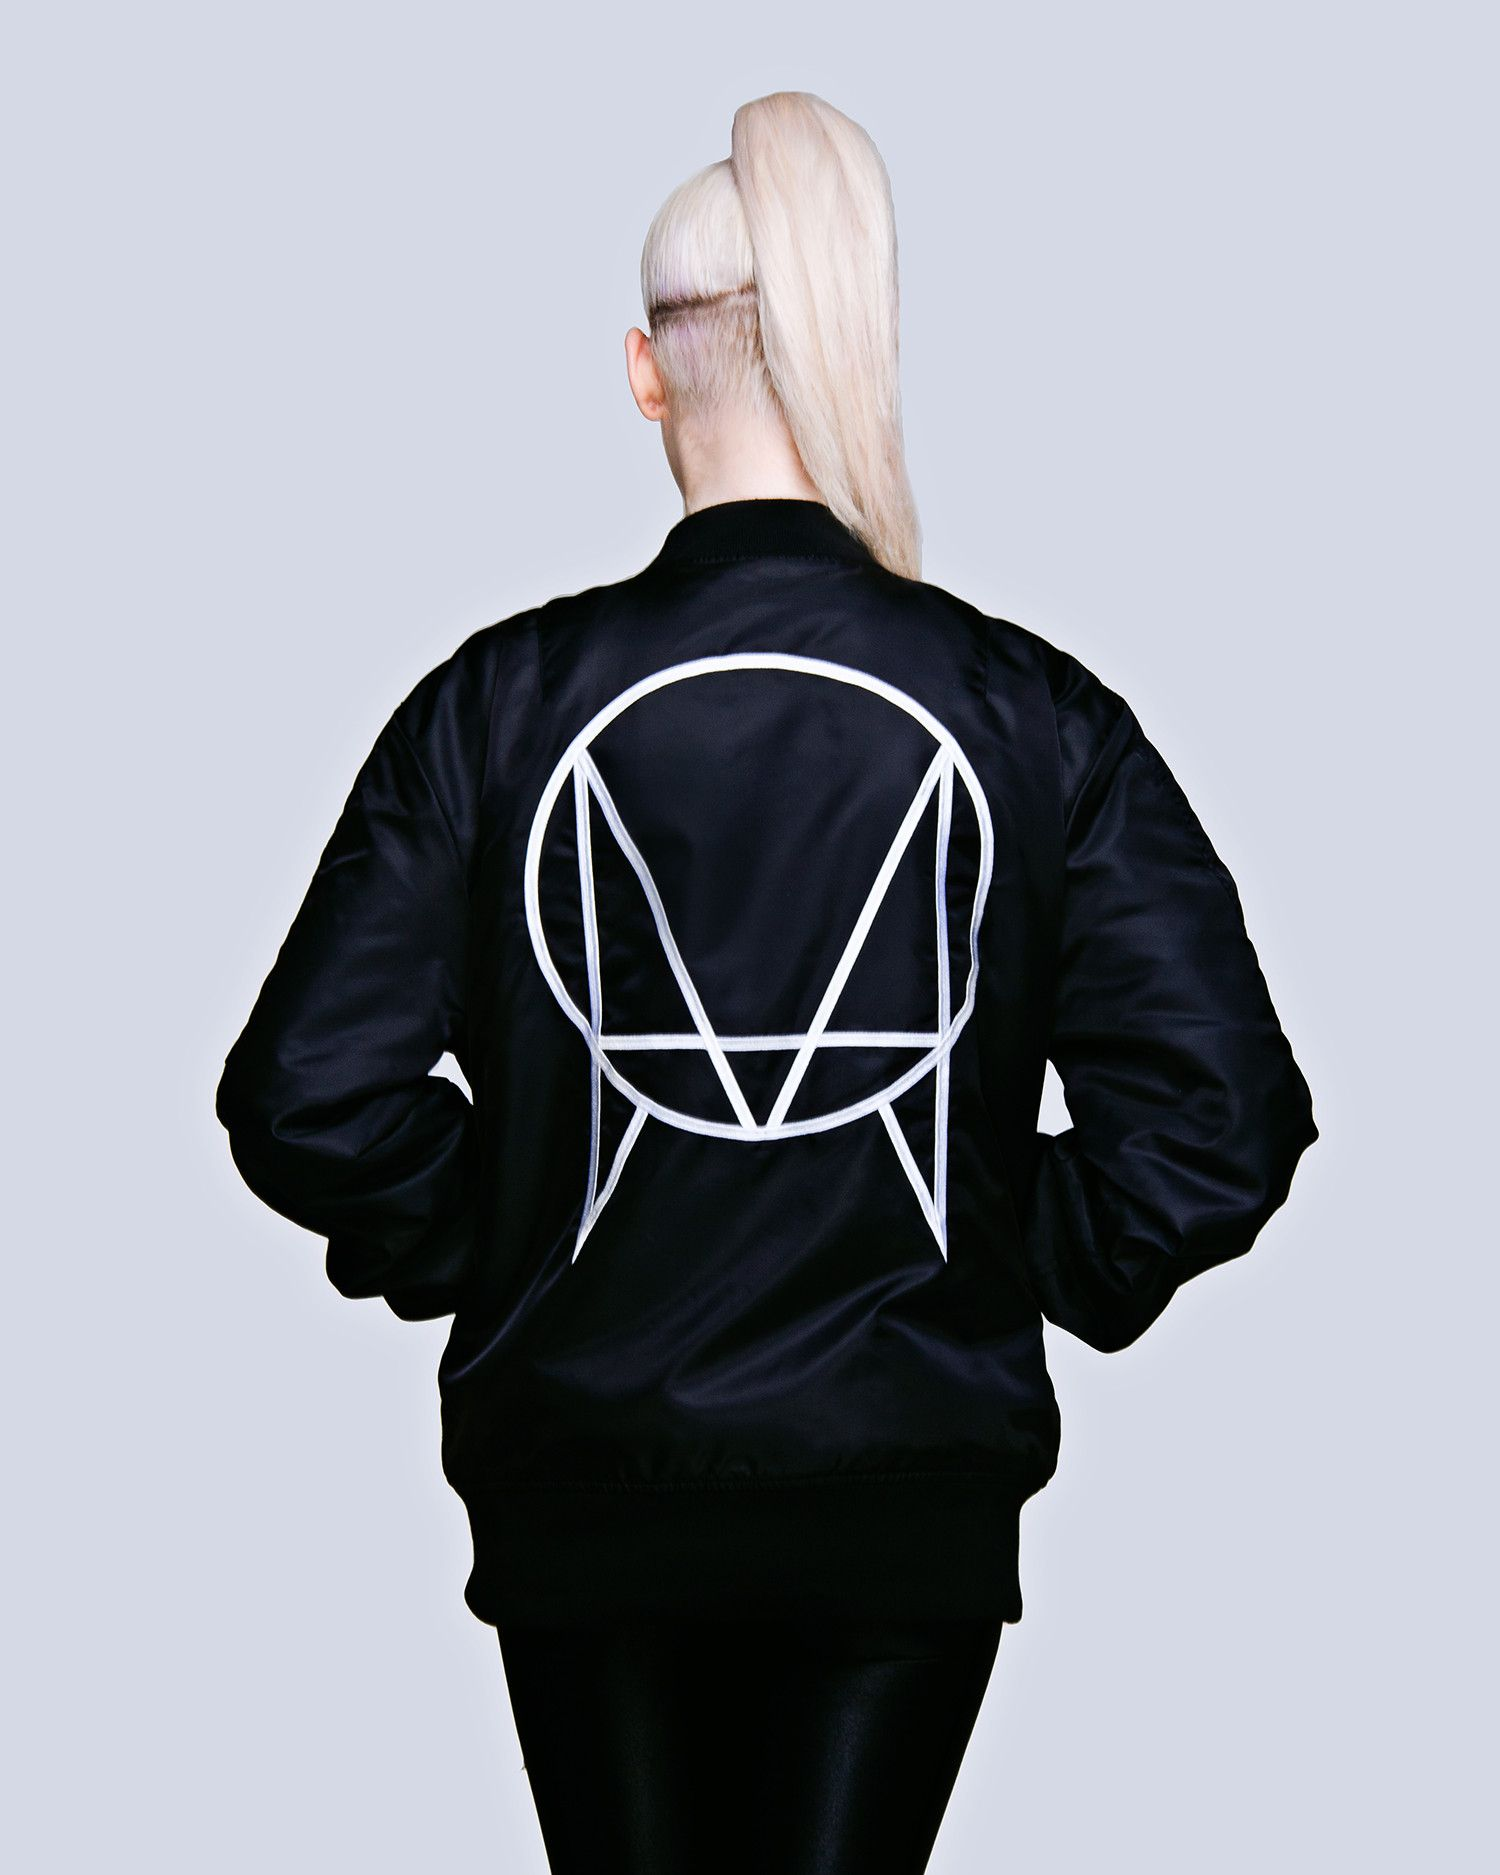 OWSLA X LONG 'OWSLA MA1' Jacket // Unisex OWSLA official